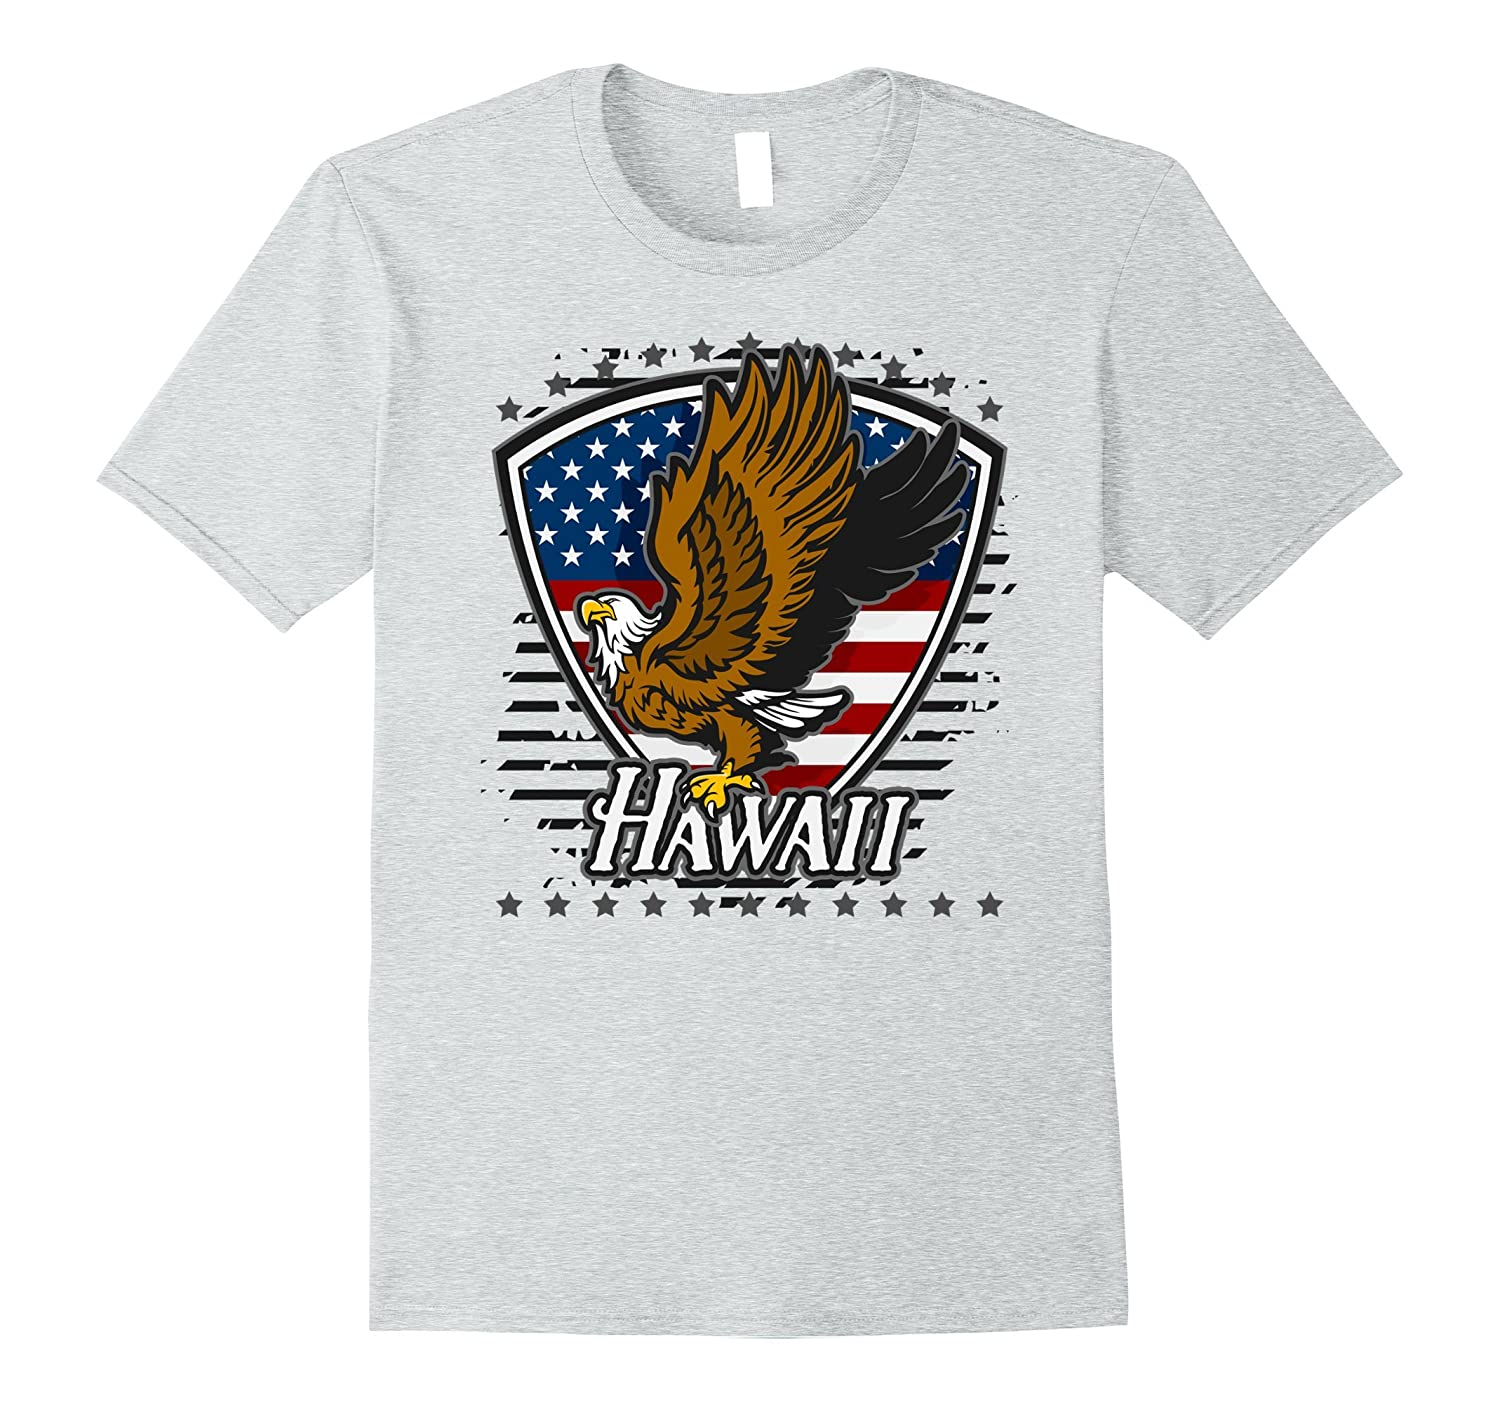 dec18228d Hawaii Shirt Bald Eagle on American Flag-ANZ - Anztshirt